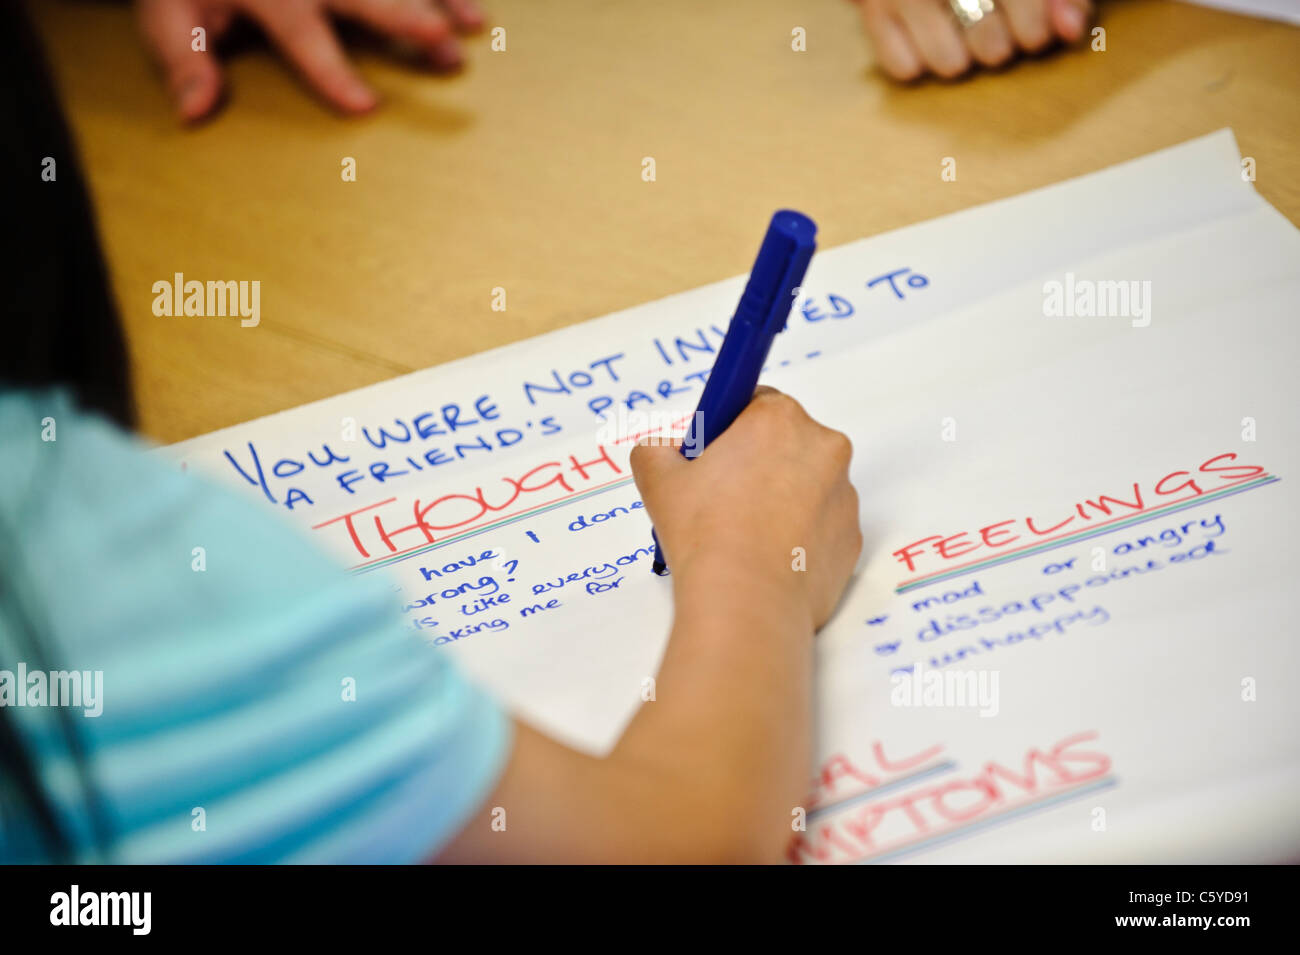 pen writing on large sheet of flip chart paper the words thoughts and feelings in a classroom setting - Stock Image